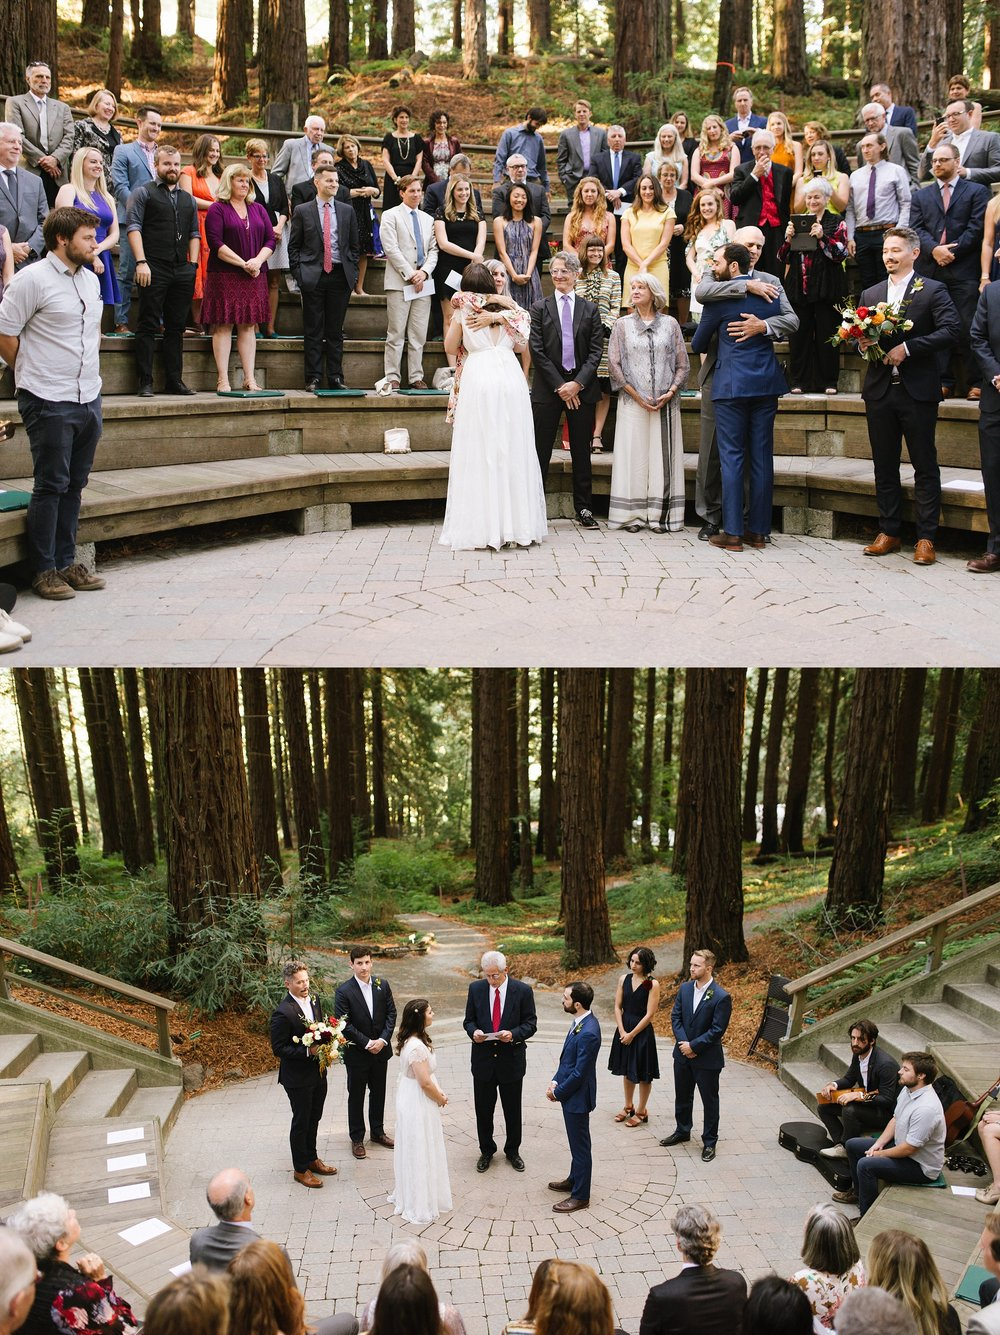 noahhannah_redwoods_botanical_wedding_berkeley_cdp_0030.jpg